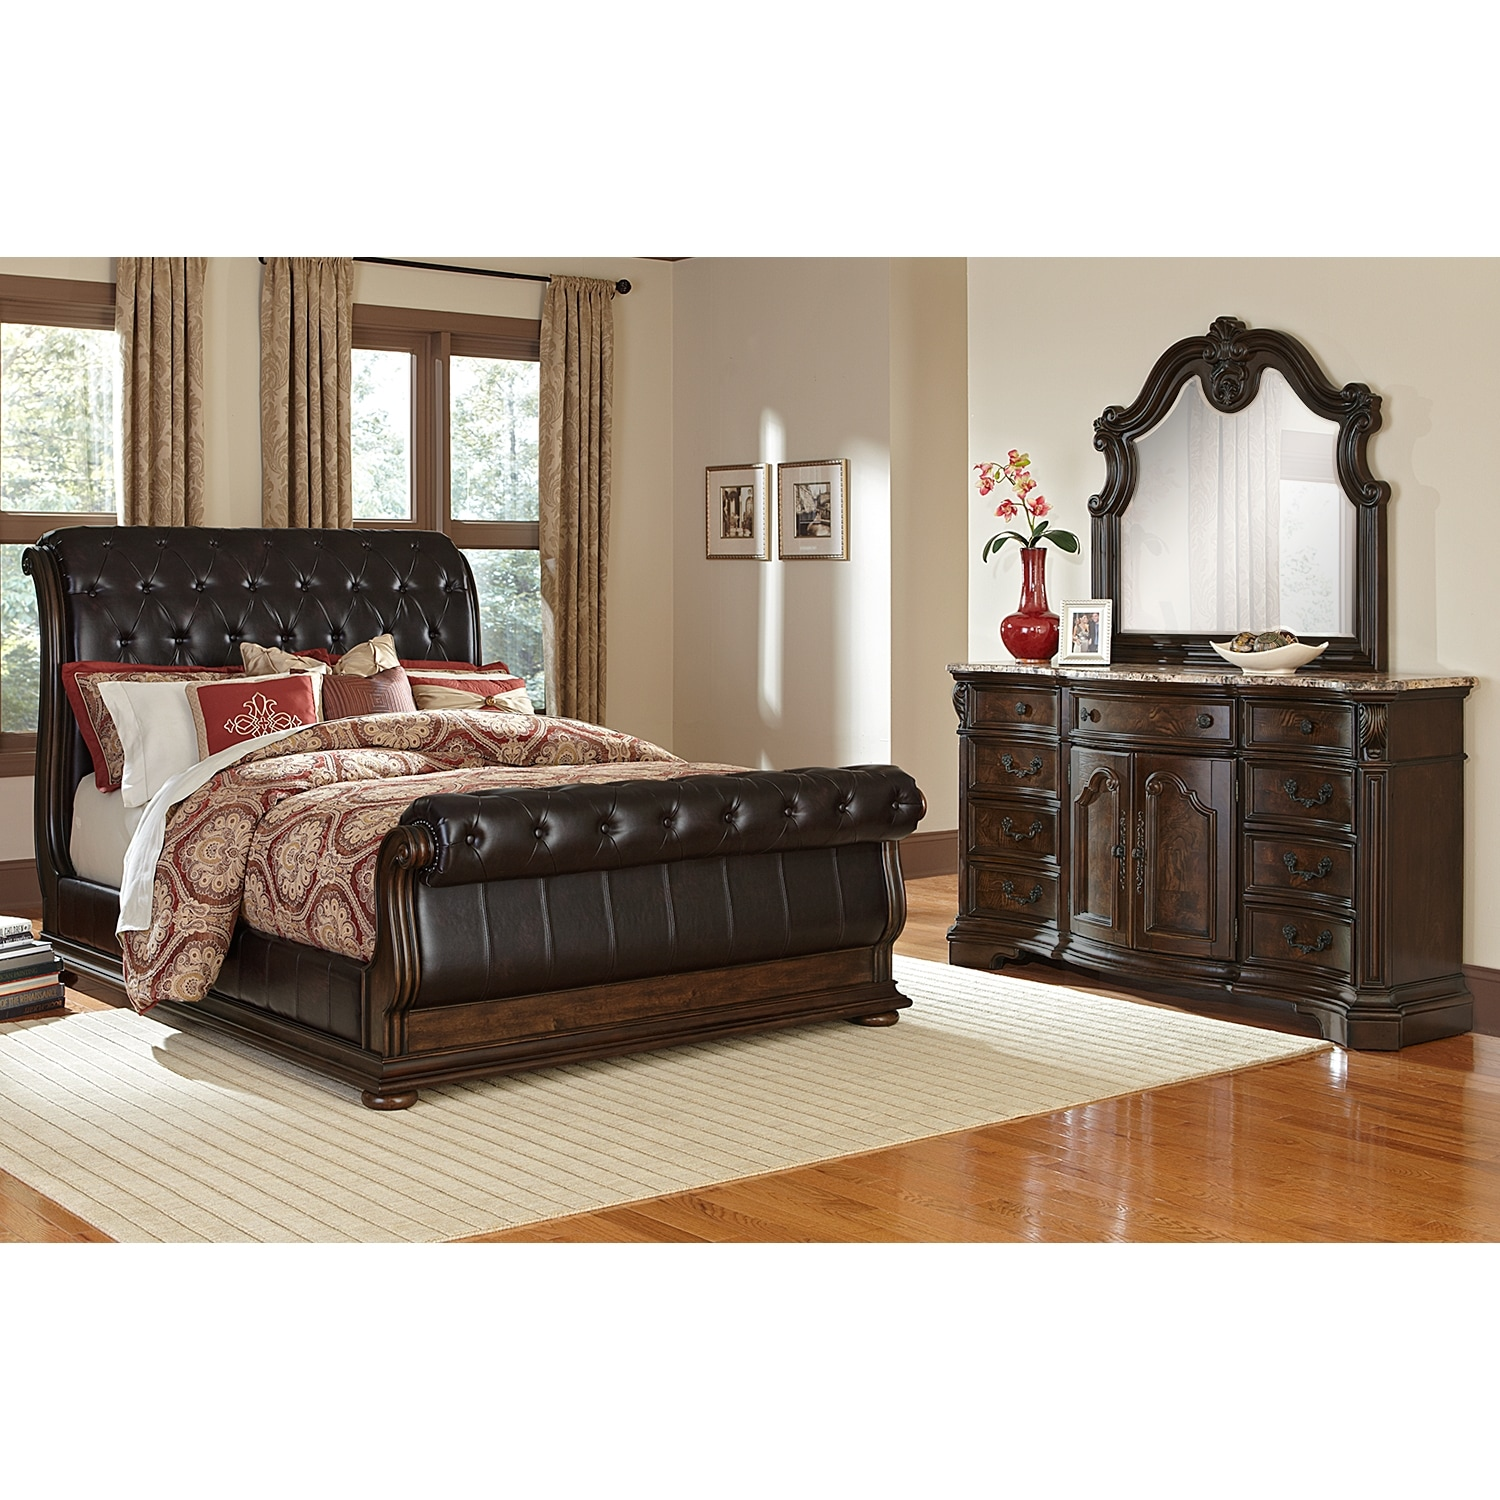 Monticello 5-Piece Queen Upholstered Sleigh Bedroom Set